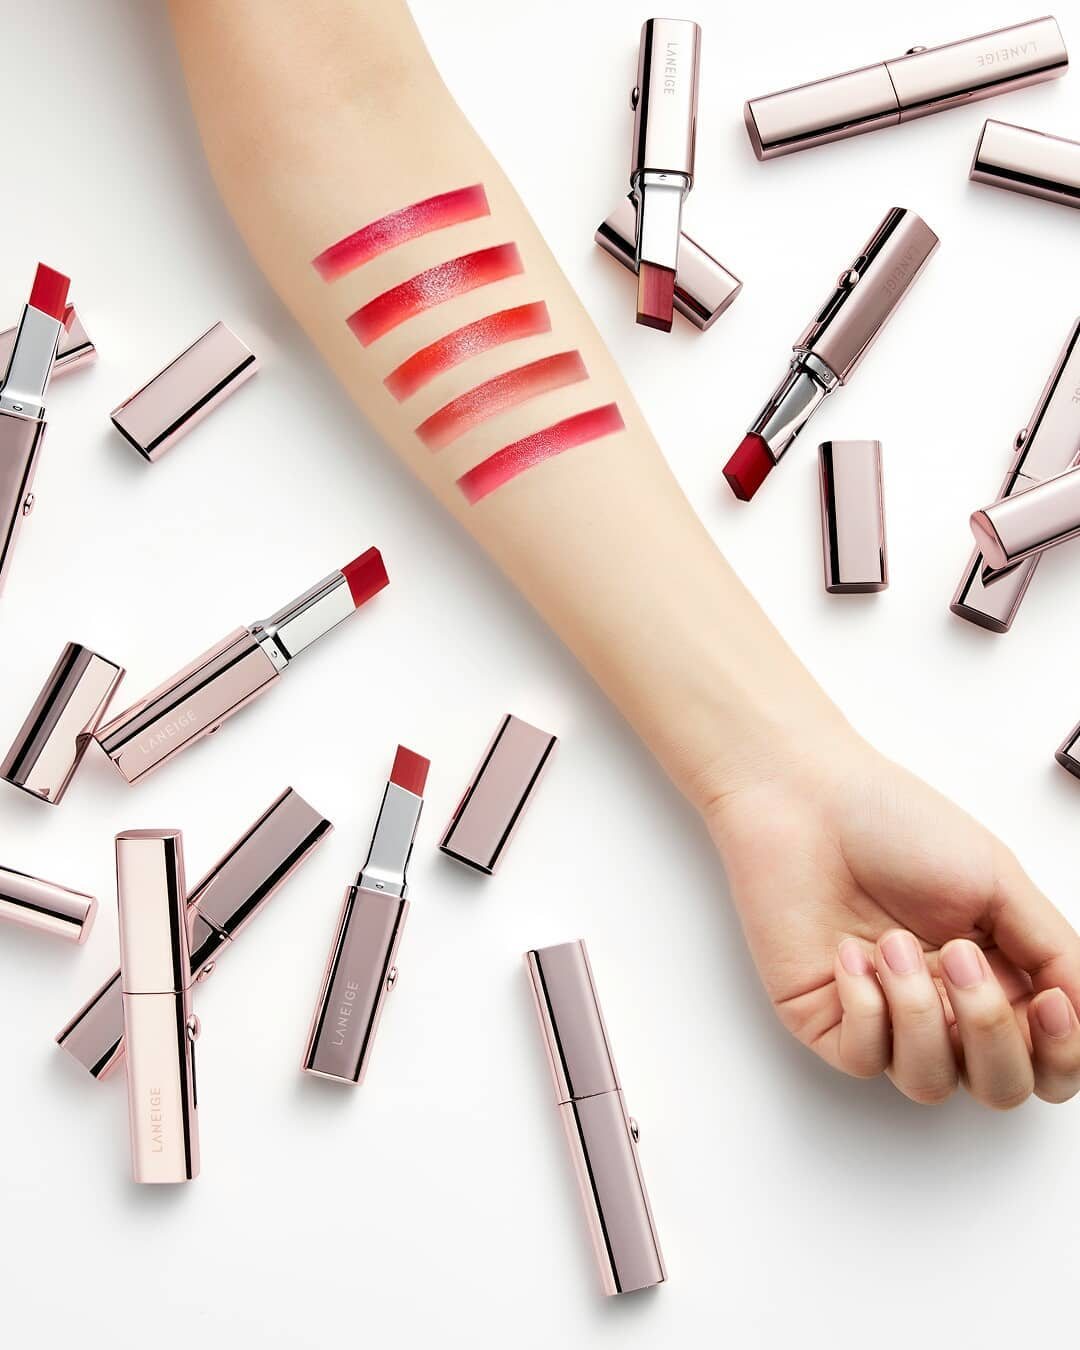 Laneige Layering Lip Bar - Bici Cosmetics